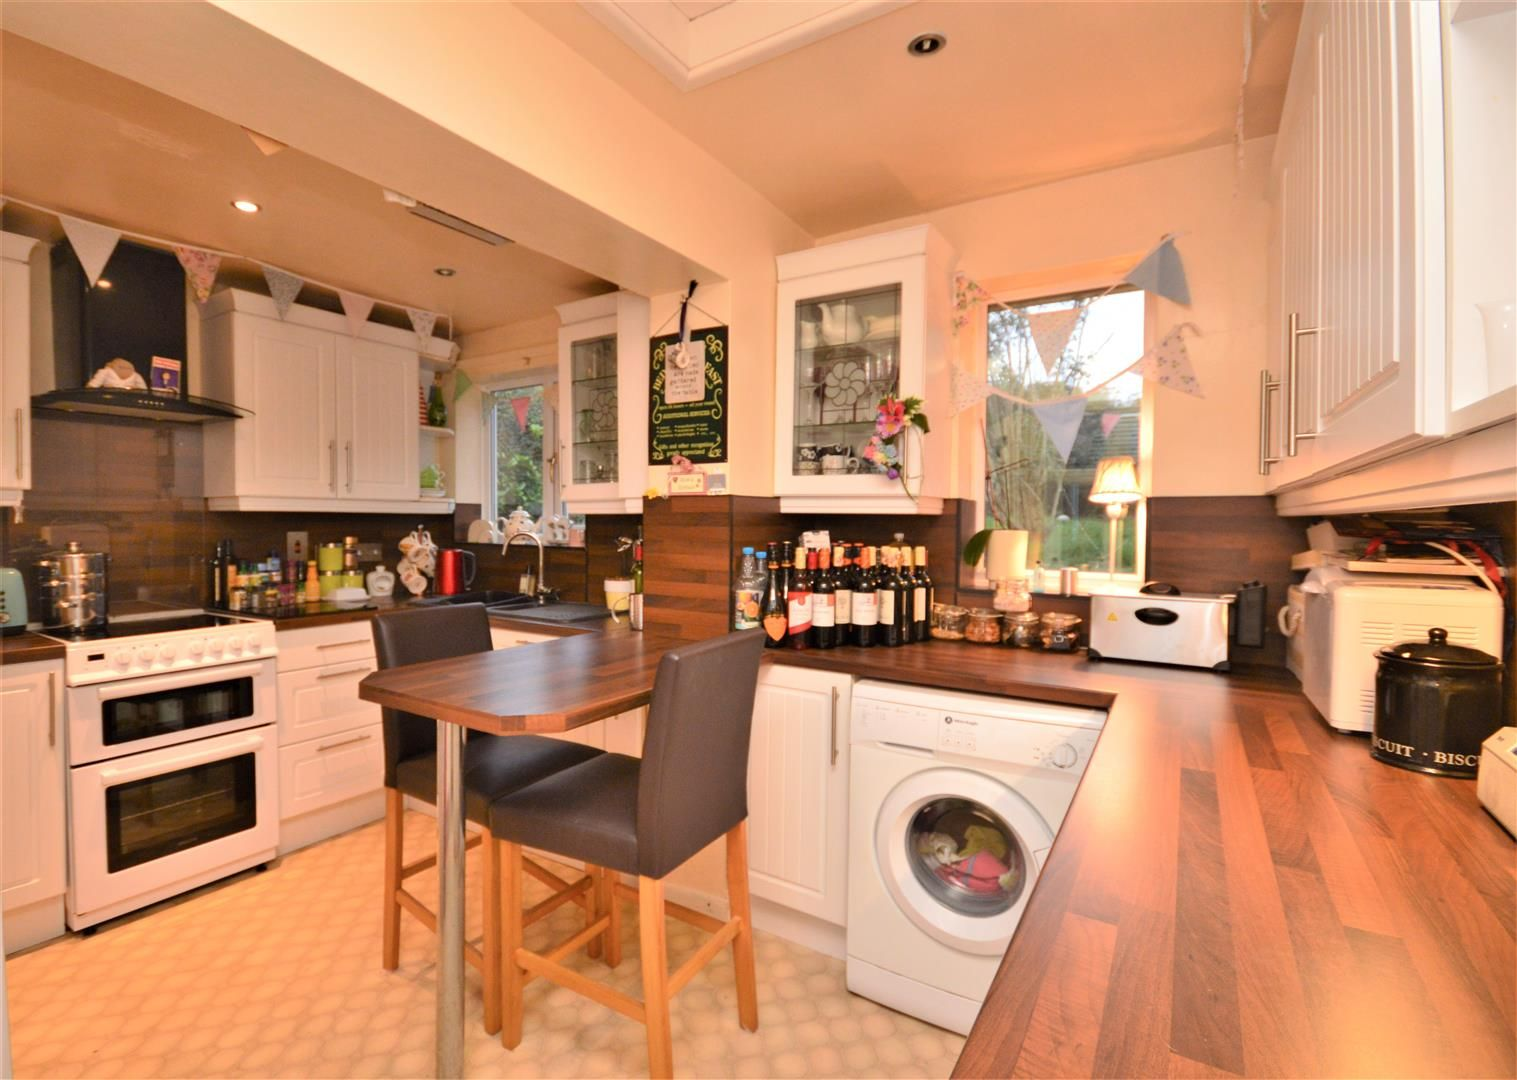 3 bed semi-detached for sale in Much Birch  - Property Image 4